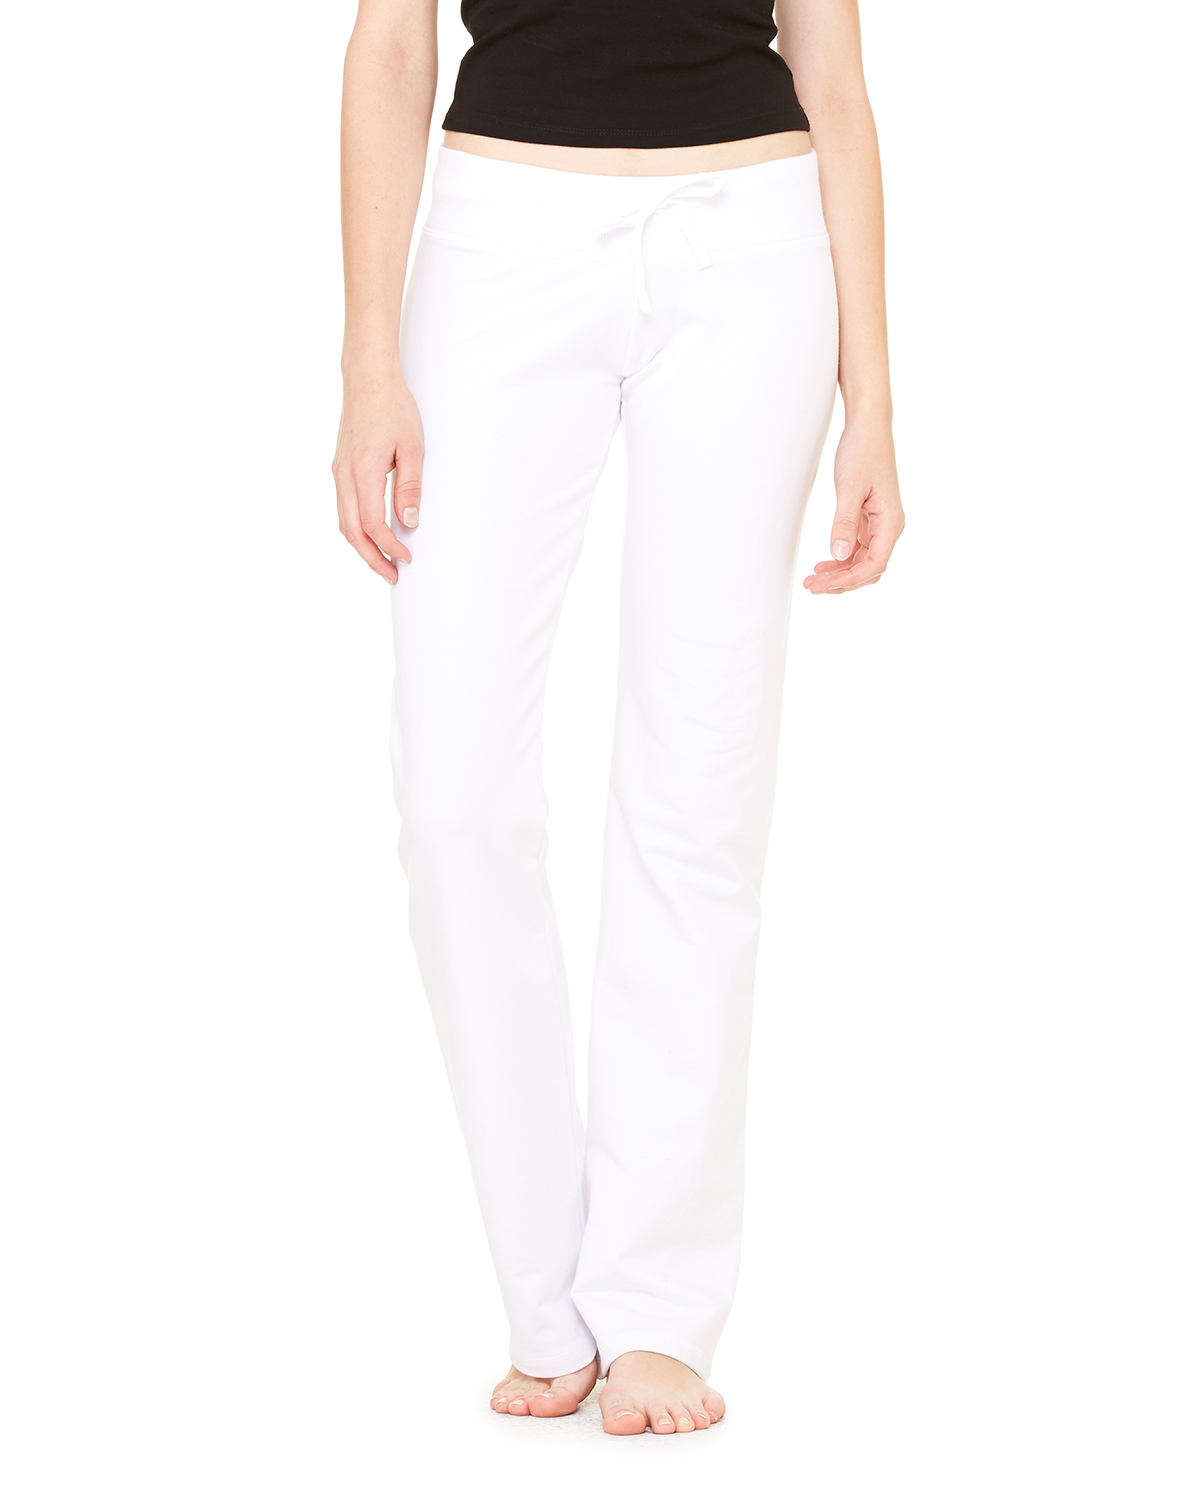 Bella B7217  Women's Stretch French Terry Lounge Pants